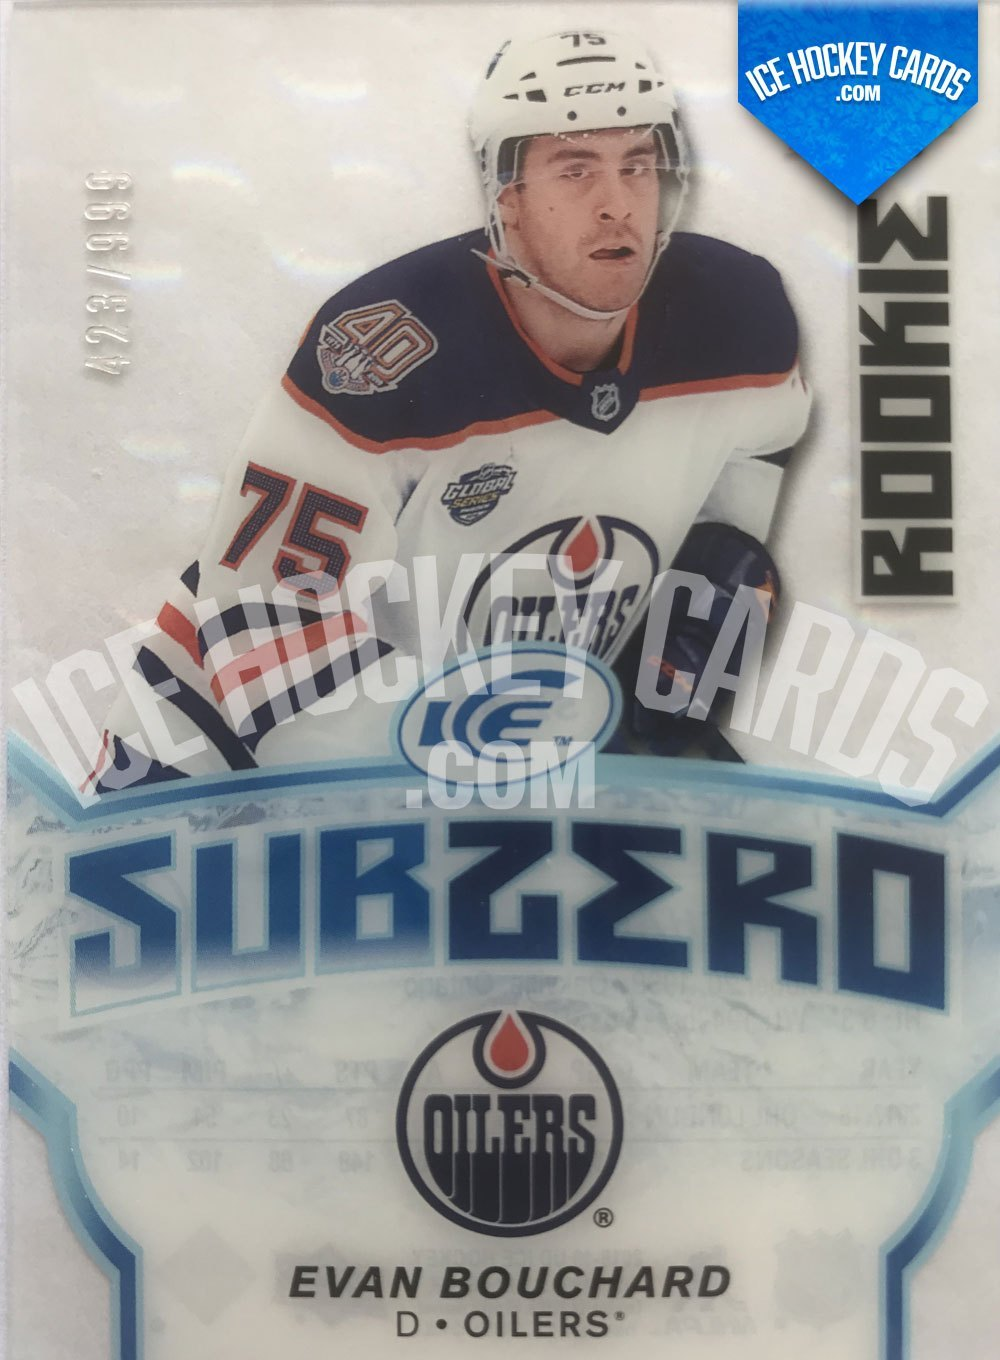 Upper Deck - ICE 18-19 - Evan Bouchard Subzero Rookie Card